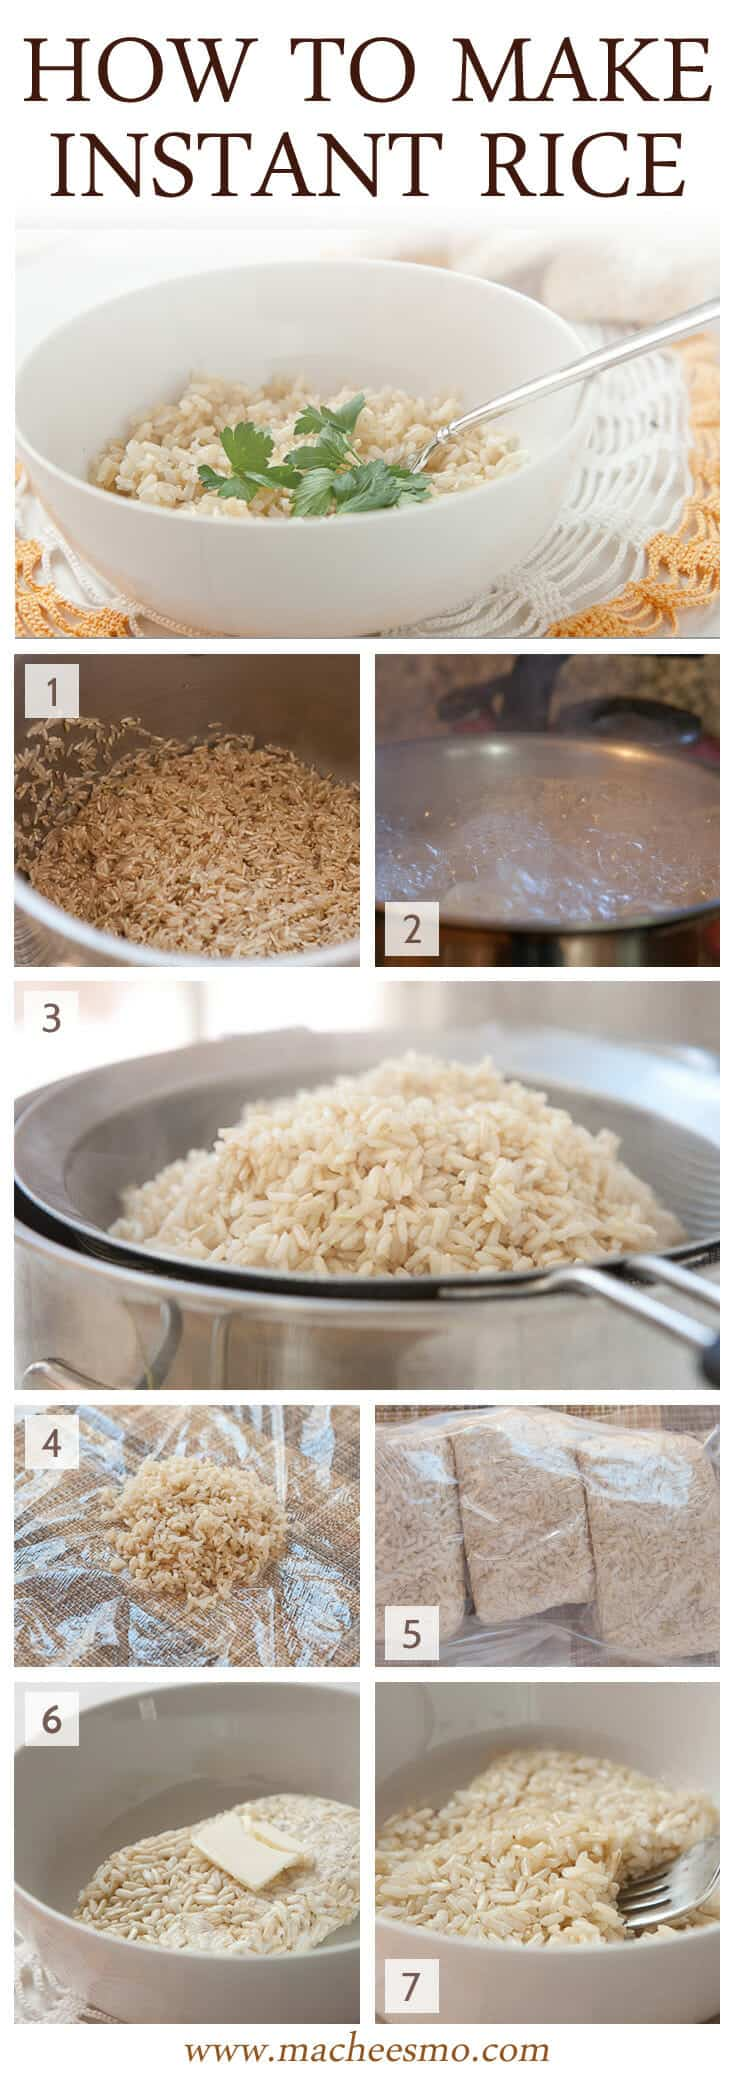 Instant Rice At Home: The trick and tutorial for making excellent instant rice at home. I like to use brown rice. Cook a big batch, store it correctly, and reheat it in minutes!